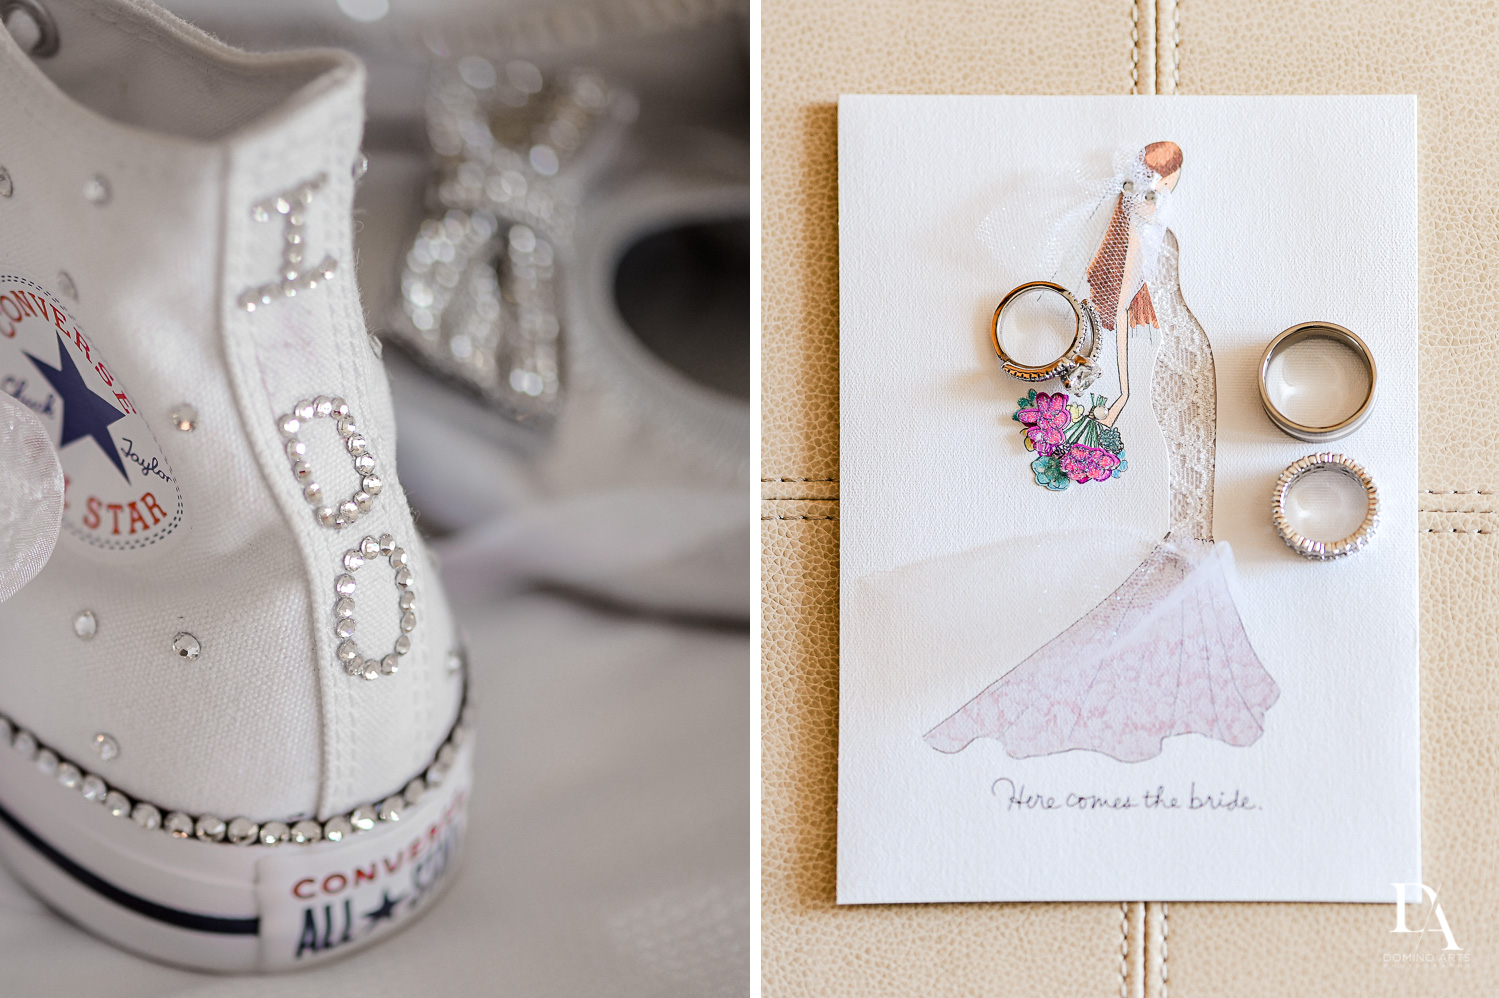 Amazing details Wedding Photography in South Florida at Fort Lauderdale Marriott Harbor Beach Resort & Spa by Domino Arts Photography